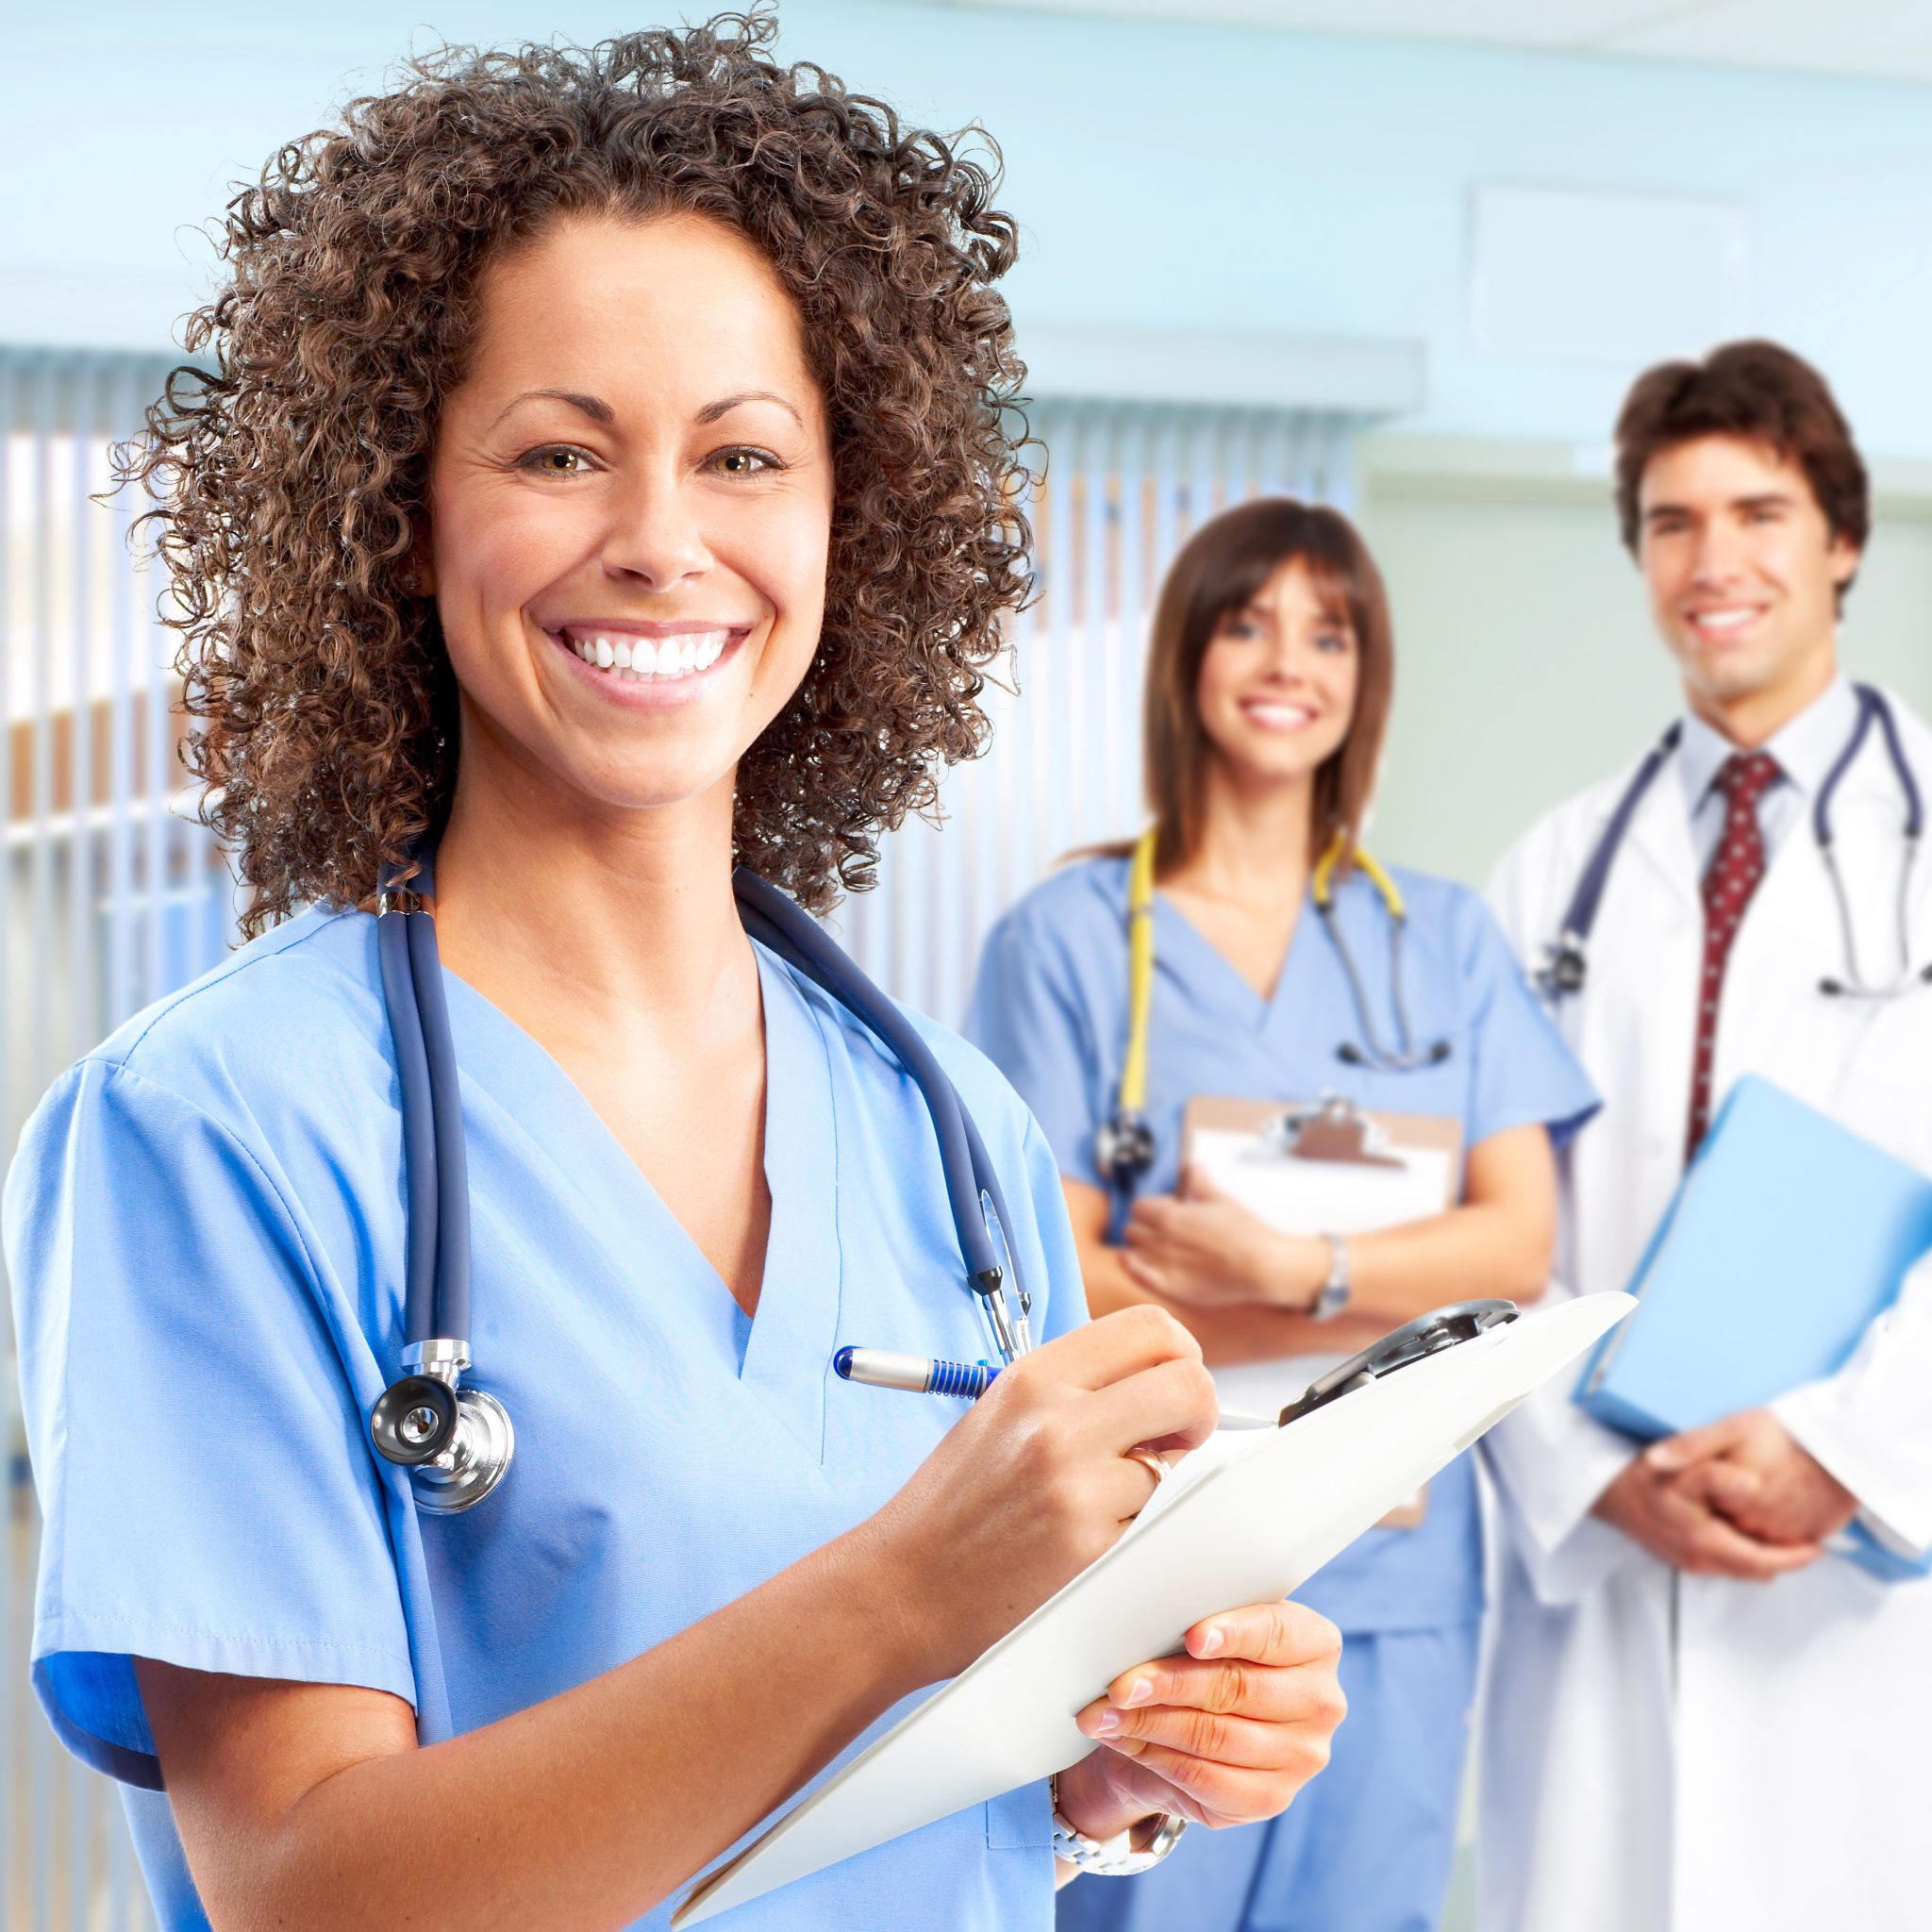 lpn case studies medicine Professional medical textbooks for the medical, dental, veterinary, nursing, and other health professional fields free ups shipping on all orders.